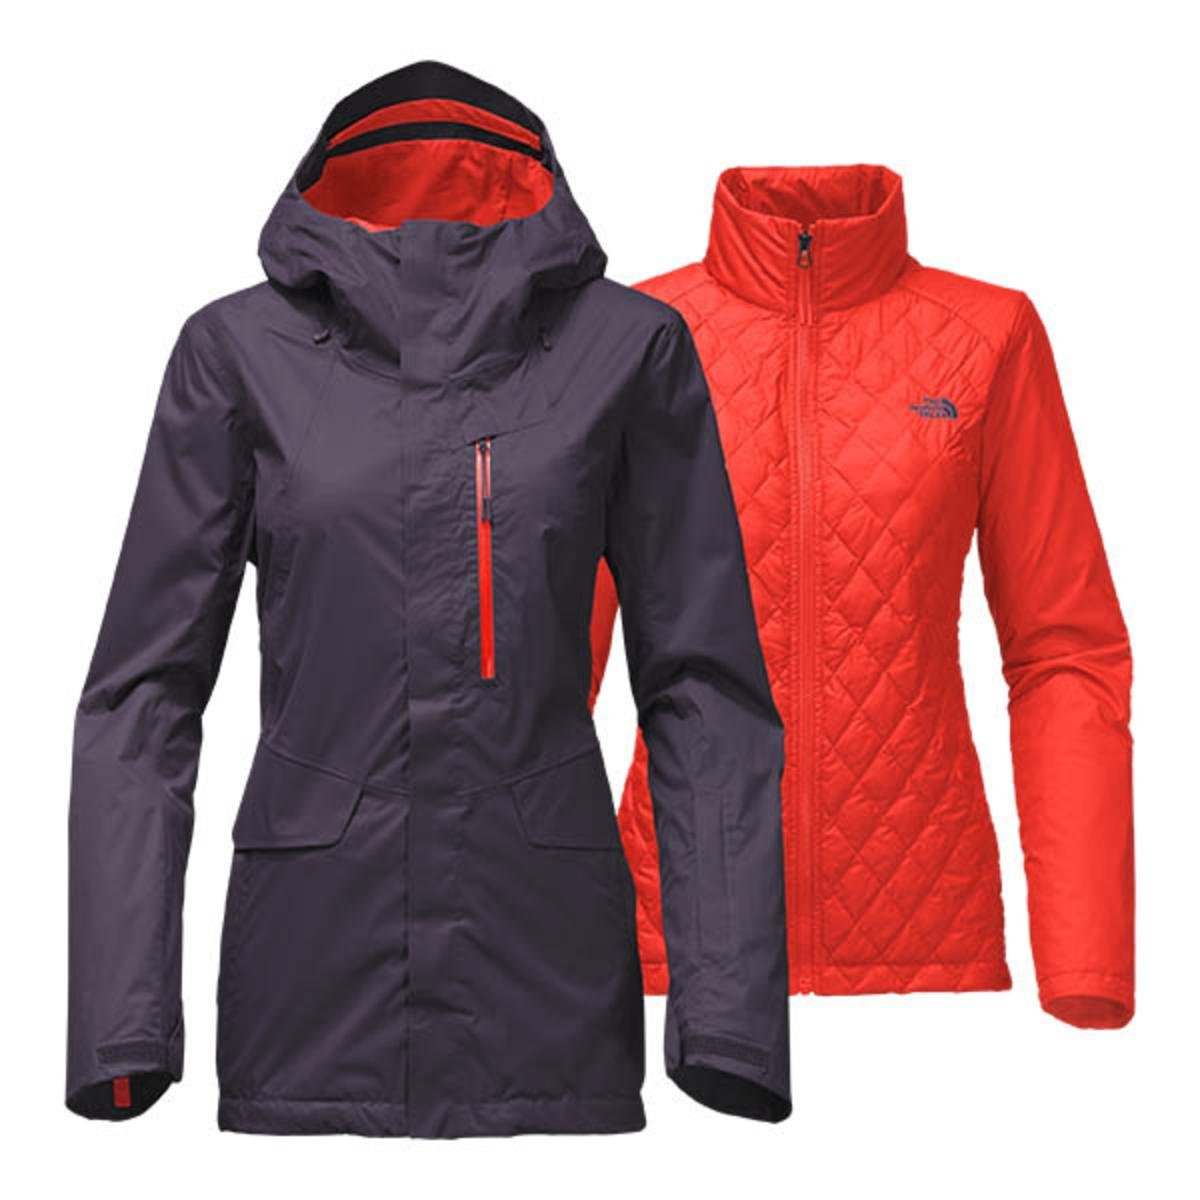 e6859e1c1 The North Face Women's Thermoball Snow Triclimate Jacket